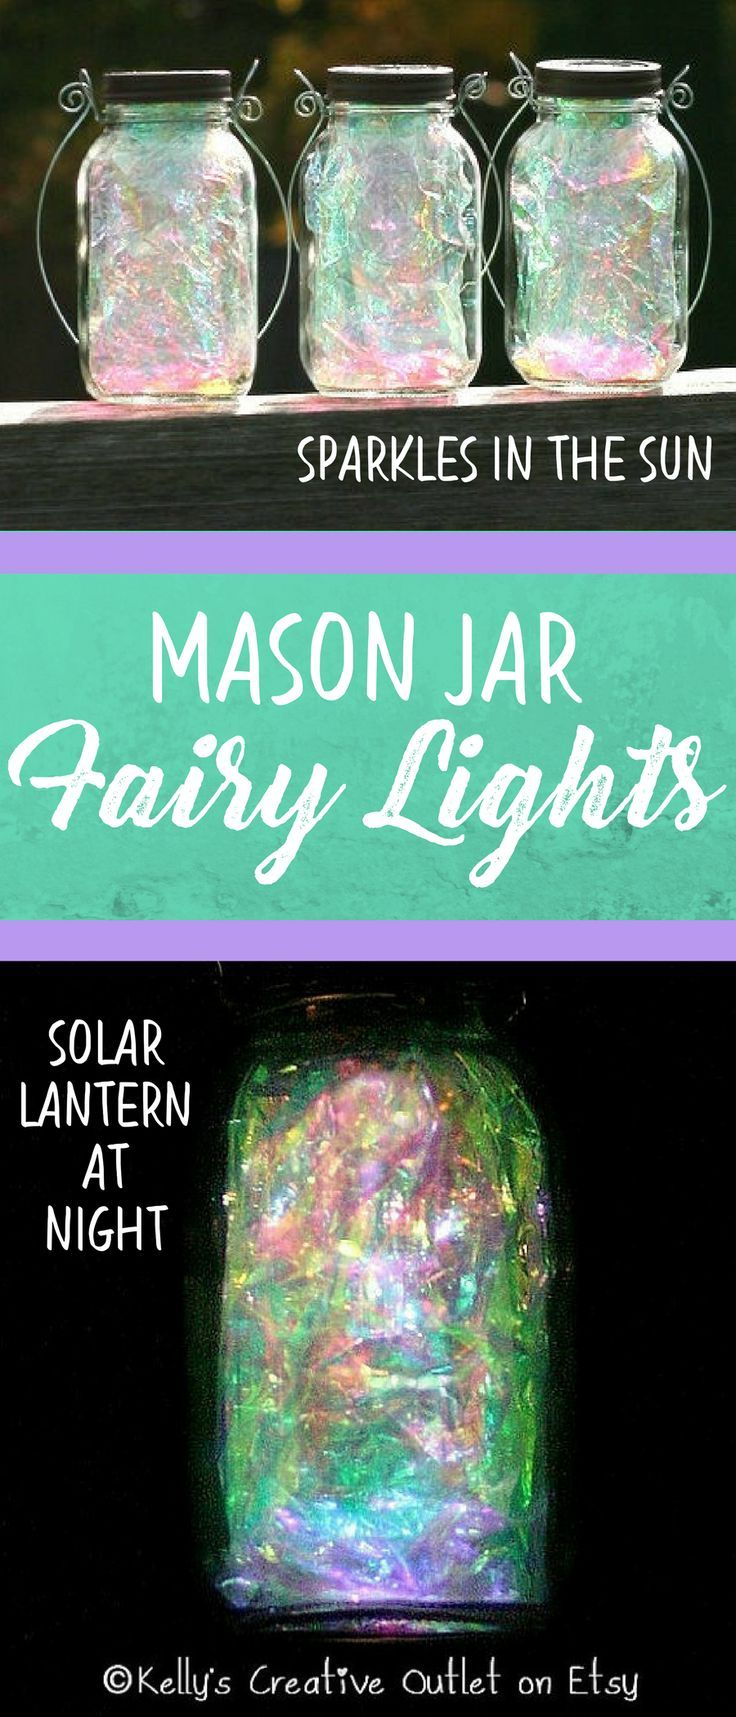 I love these super sparkly mason jars!  They look like fairies dancing in the light.  During the day they catch the sun, and at night they're a solar powered garden lantern.  Such a great idea for a pathway.  #affiliate